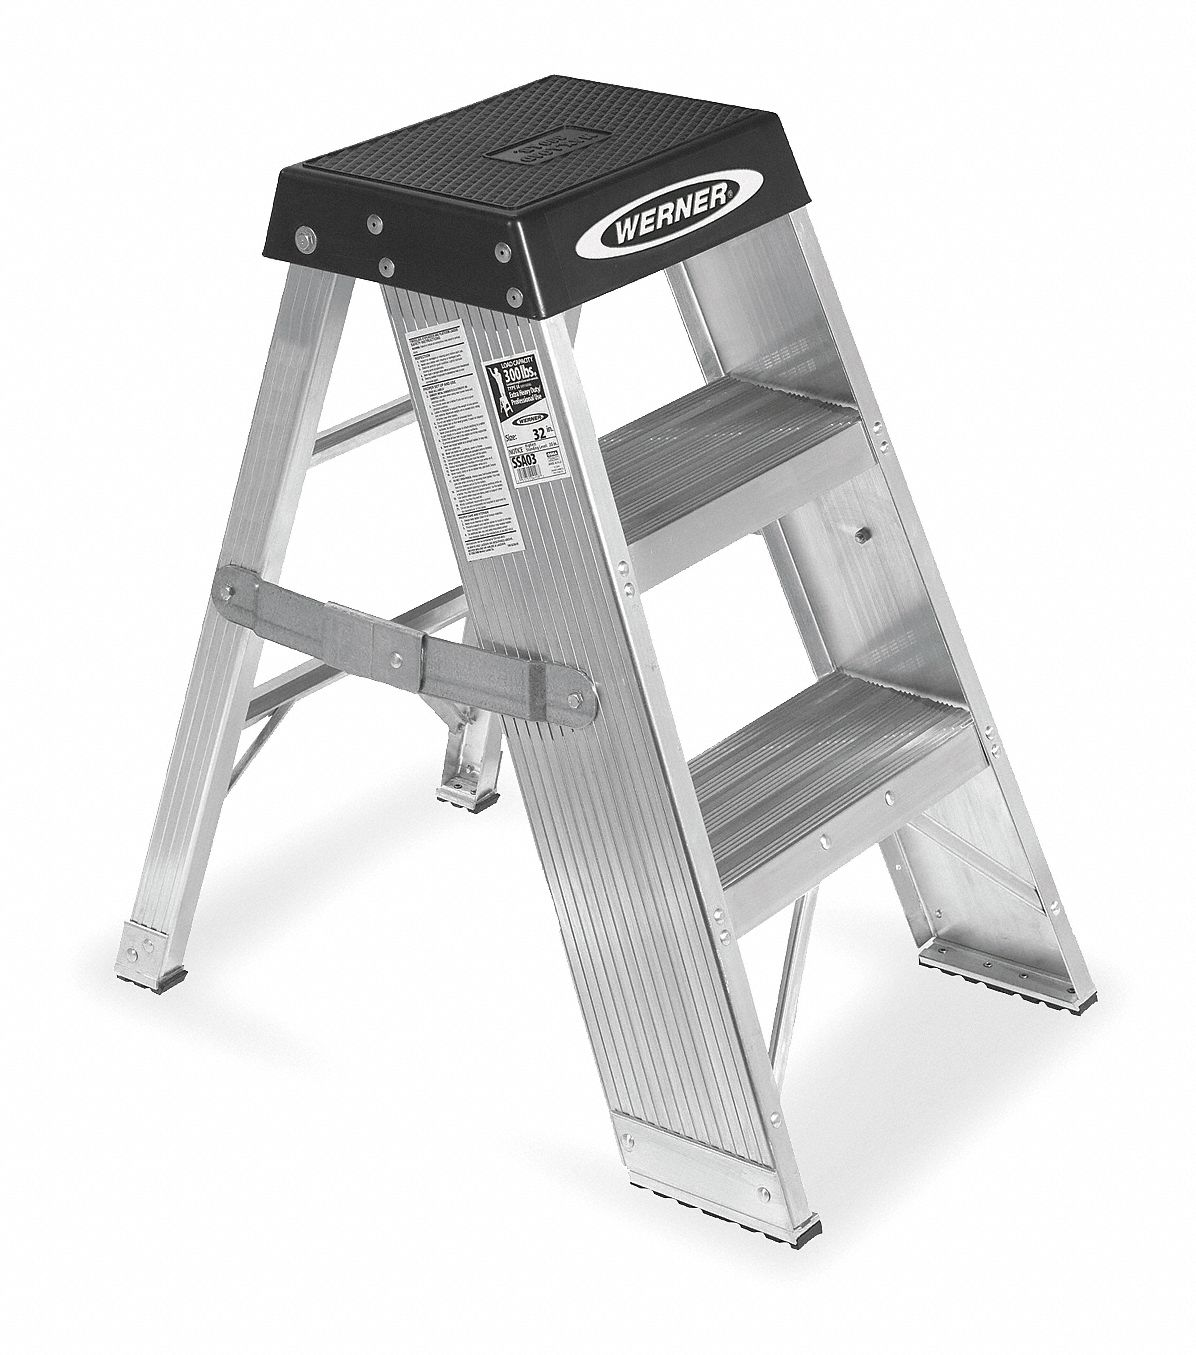 Fine Ladders Platforms And Scaffolding Grainger Industrial Supply Caraccident5 Cool Chair Designs And Ideas Caraccident5Info